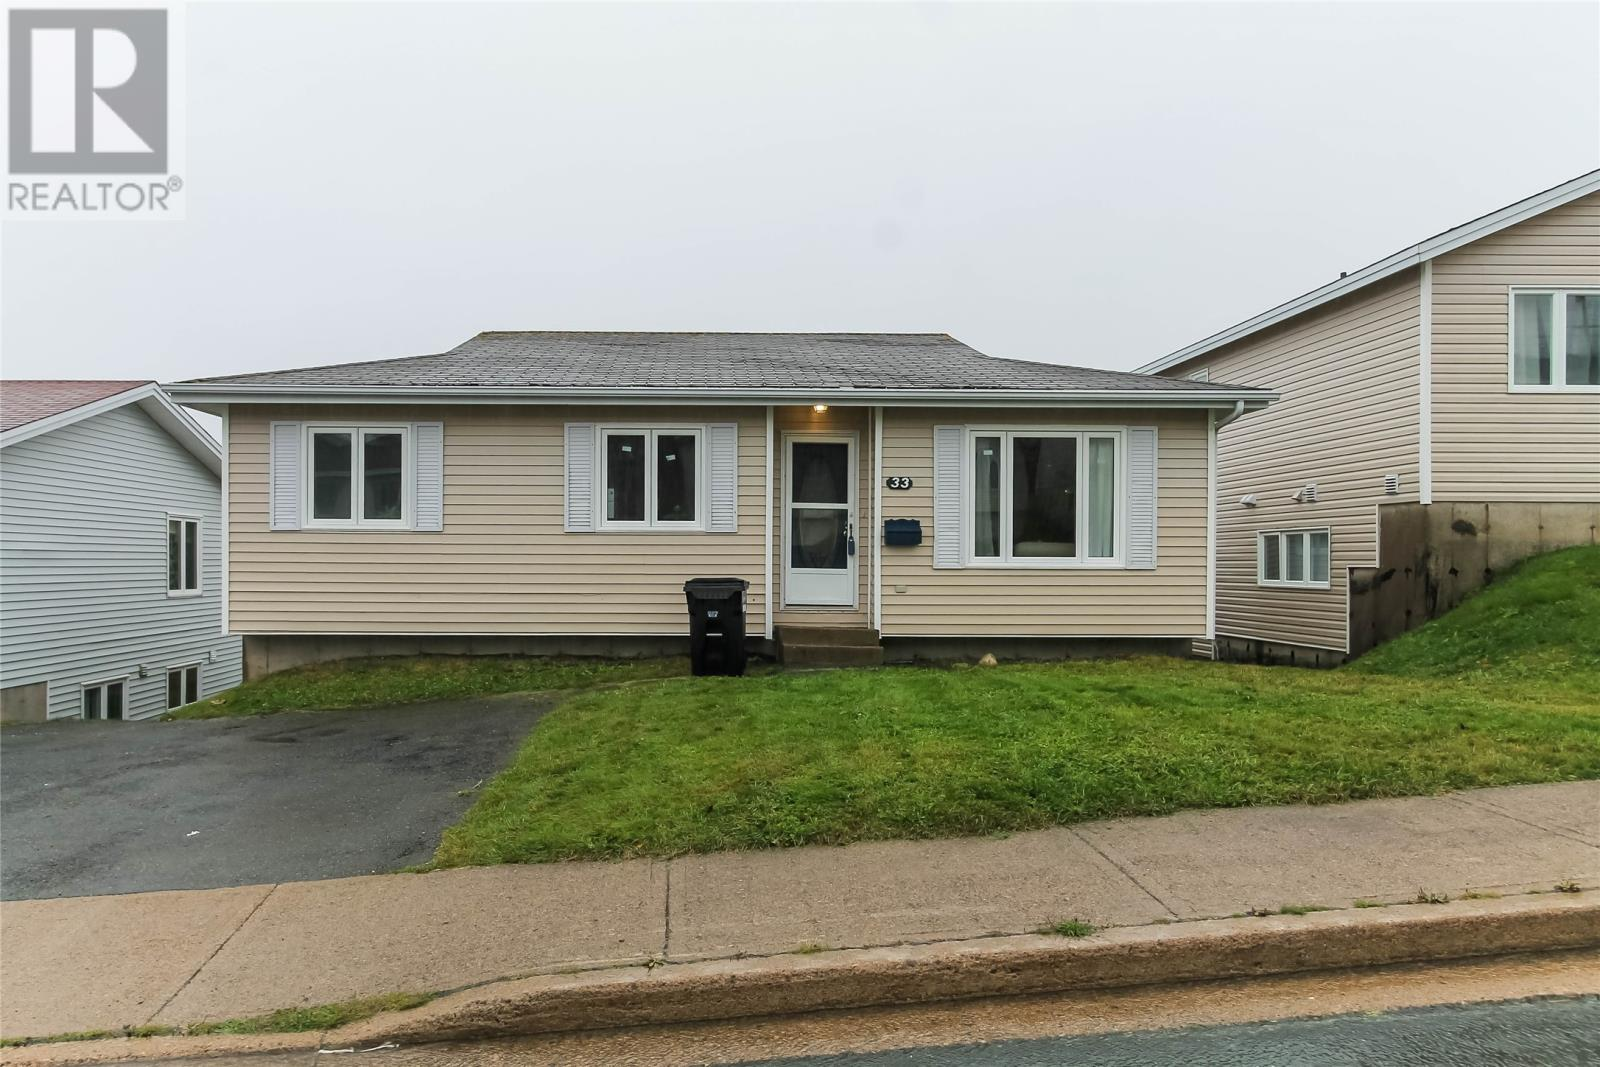 33 Edgecombe Drive, ST. JOHN'S, Newfoundland & Labrador, Canada A1B4P2, 6 Bedrooms Bedrooms, Register to View ,2 BathroomsBathrooms,Duplex,For Sale,Edgecombe,1225232